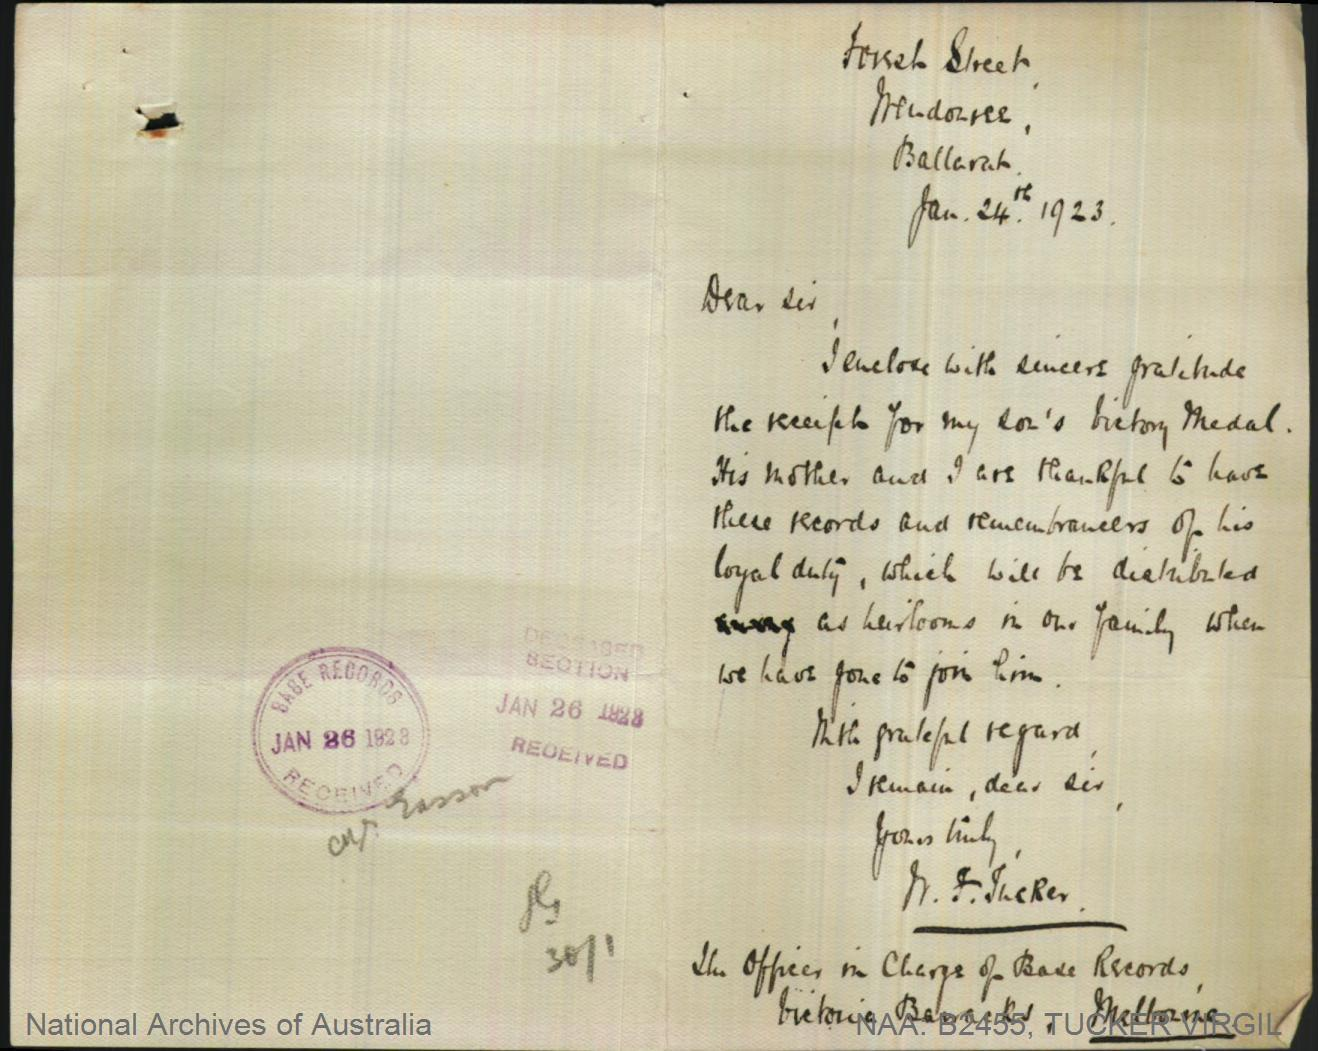 TUCKER Virgil : Service Number - Captain : Place of Birth - Charters Towers QLD : Place of Enlistment - N/A  : Next of Kin - (Father) TUCKER William Frederick